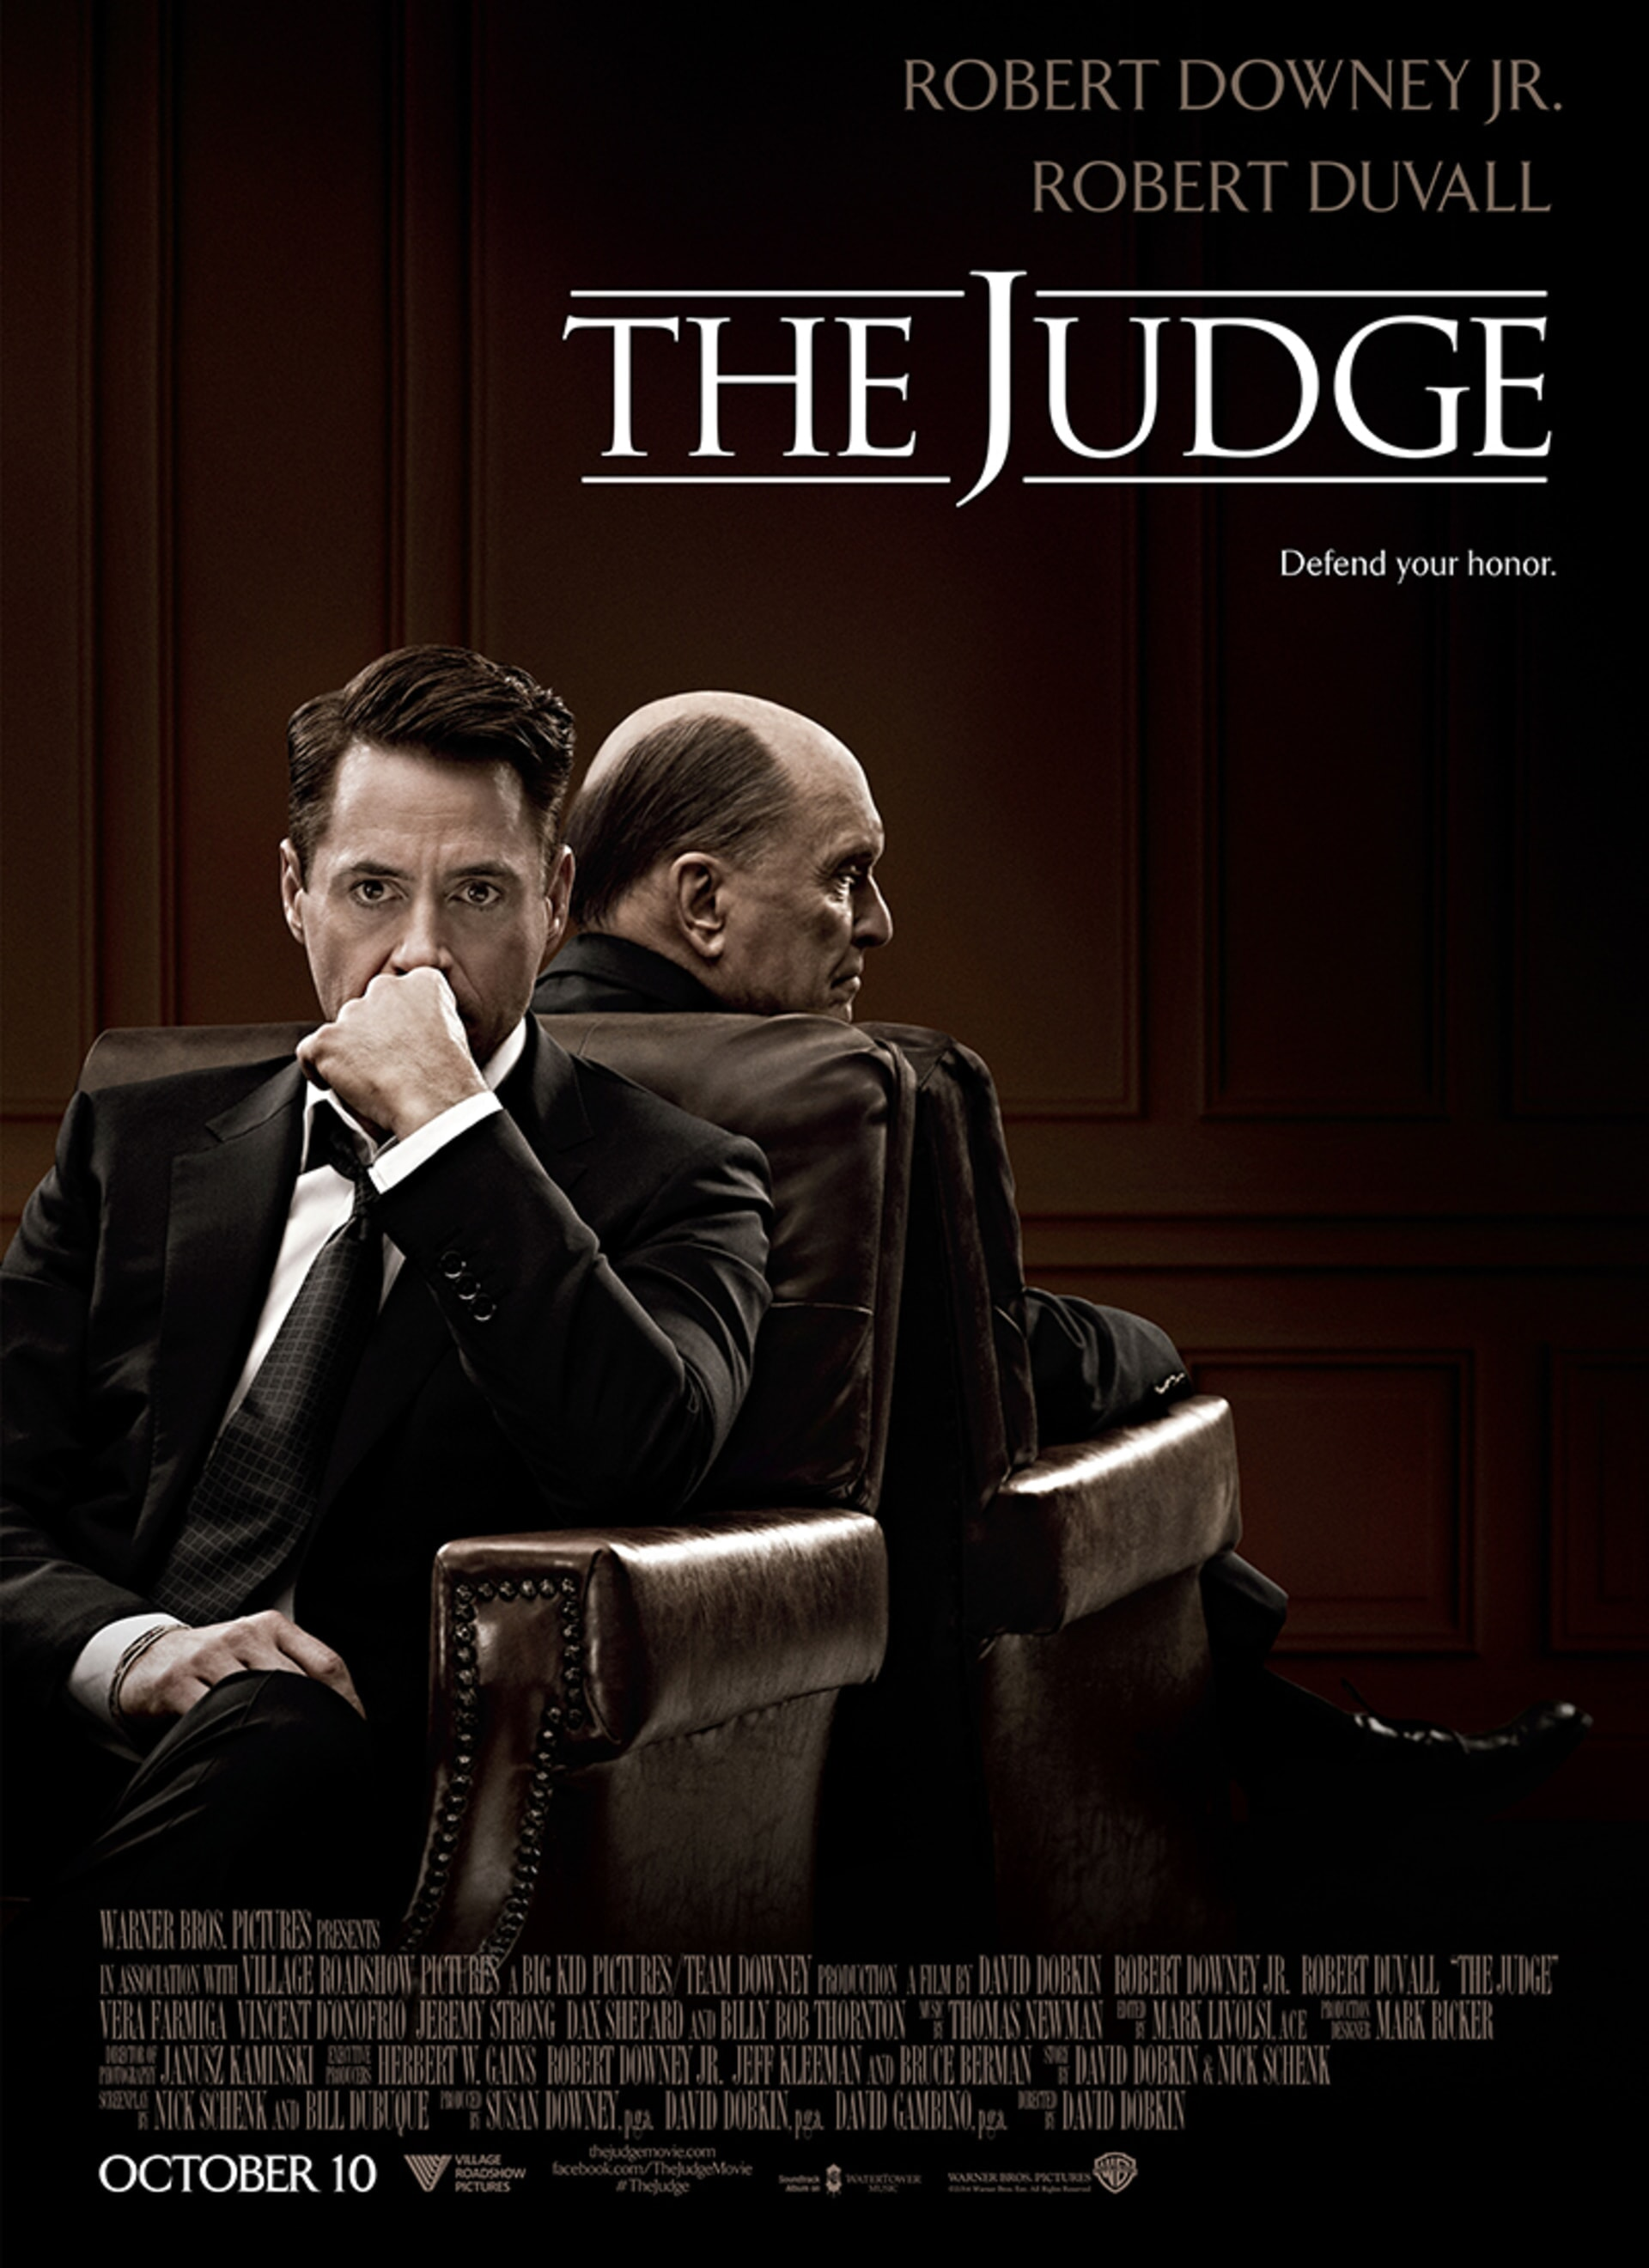 The Judge - Poster 2